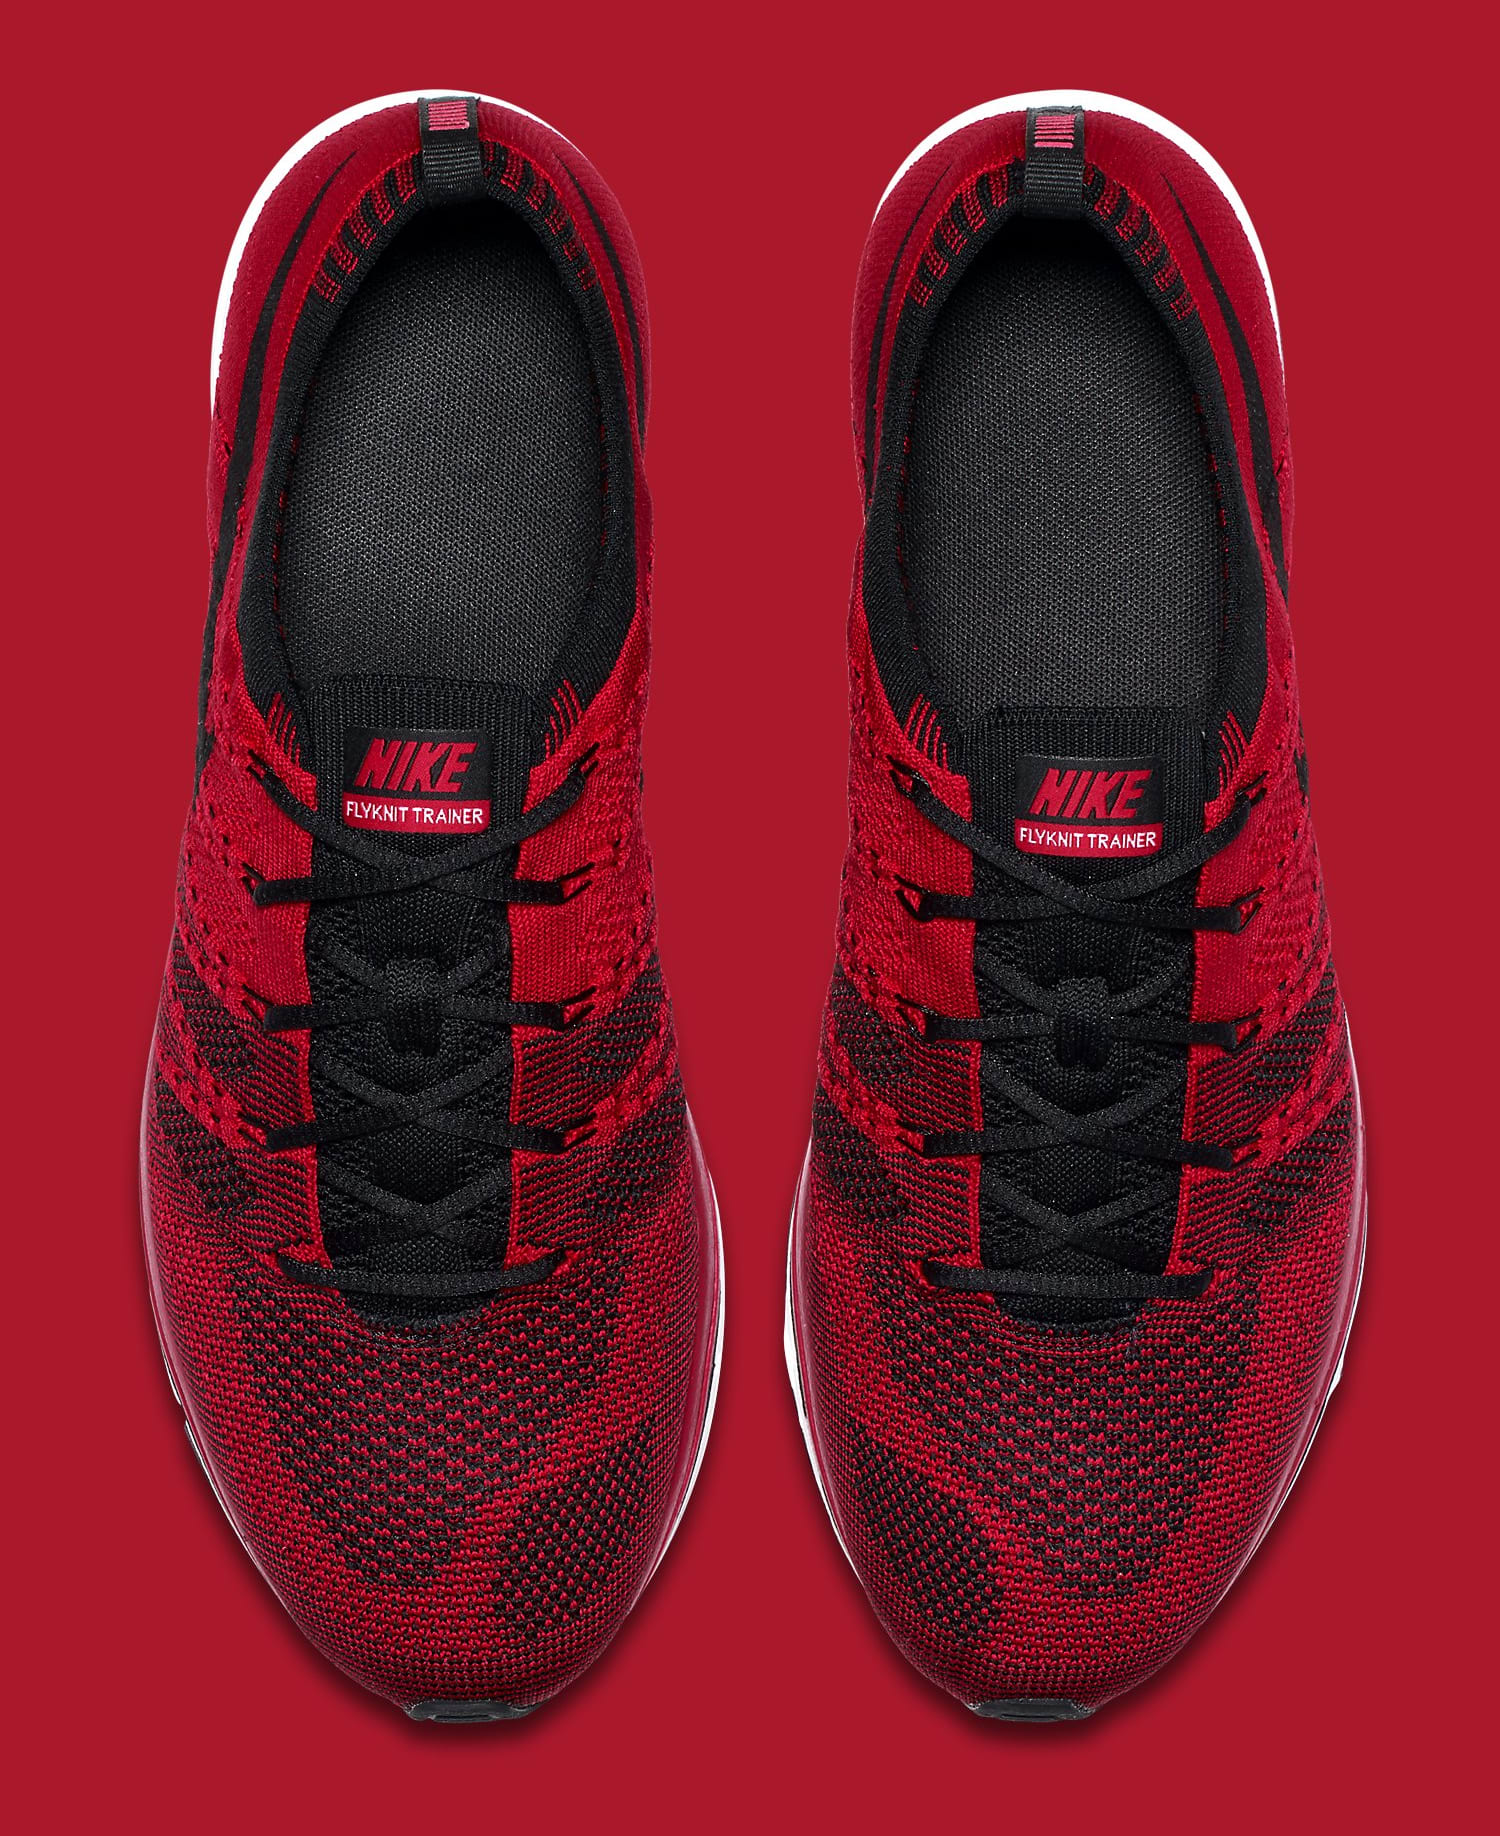 nike-flyknit-trainer-university-red-ah8396-601-top